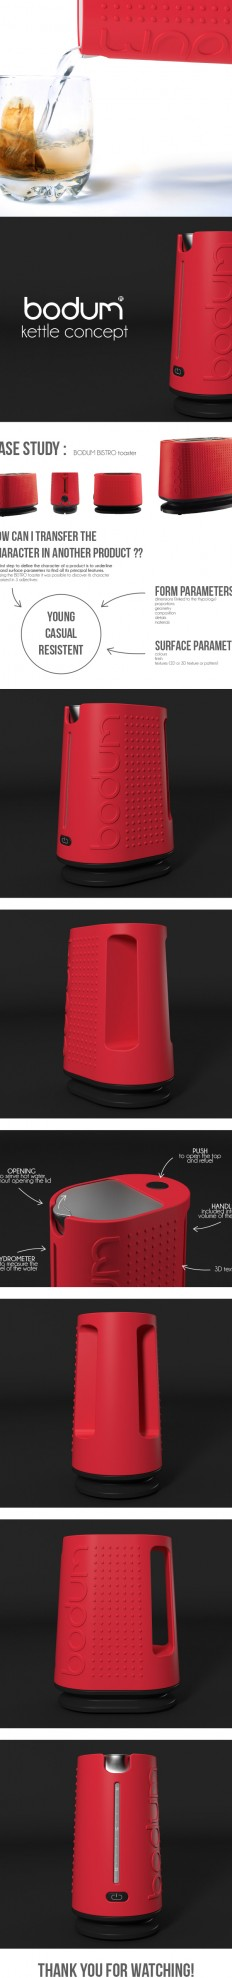 Bodum / kettle concept on